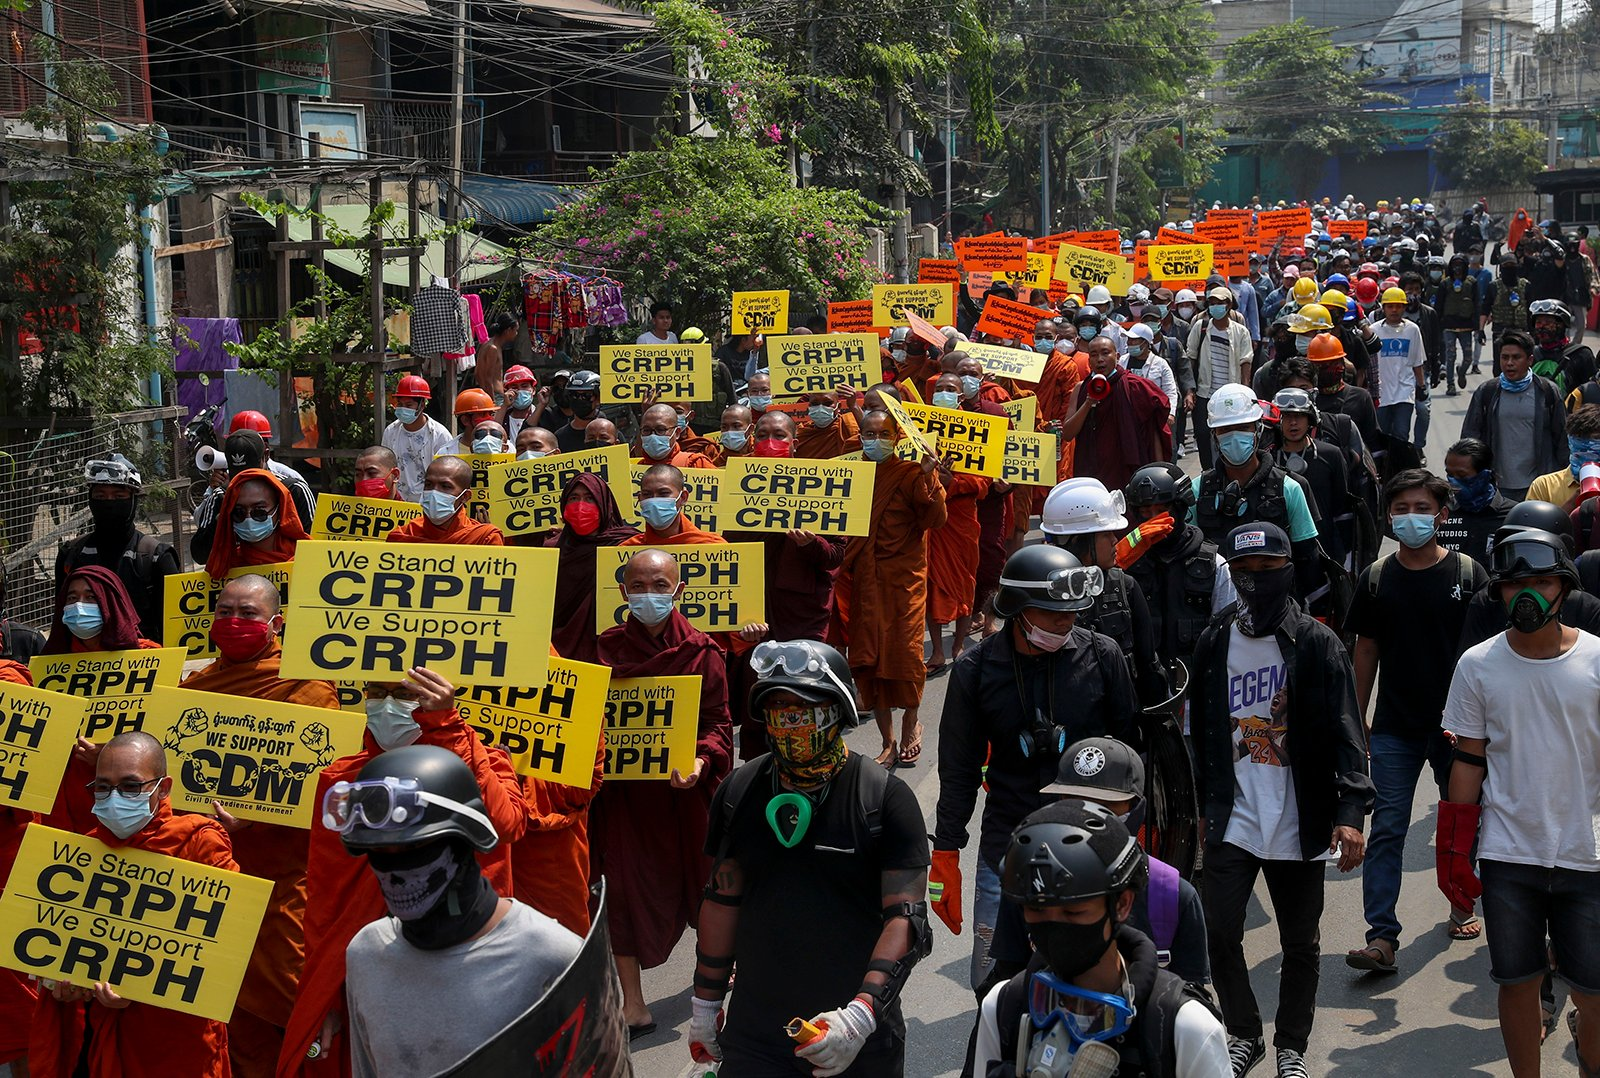 Buddhist monks, supporters of anti-coup protesters, display placards with the letters CRPH standing for Committee Representing elected members of the Union Parliament from the National League for Democracy Party, during a street march in Mandalay, Myanmar, Wednesday, March 10, 2021. (AP Photo)